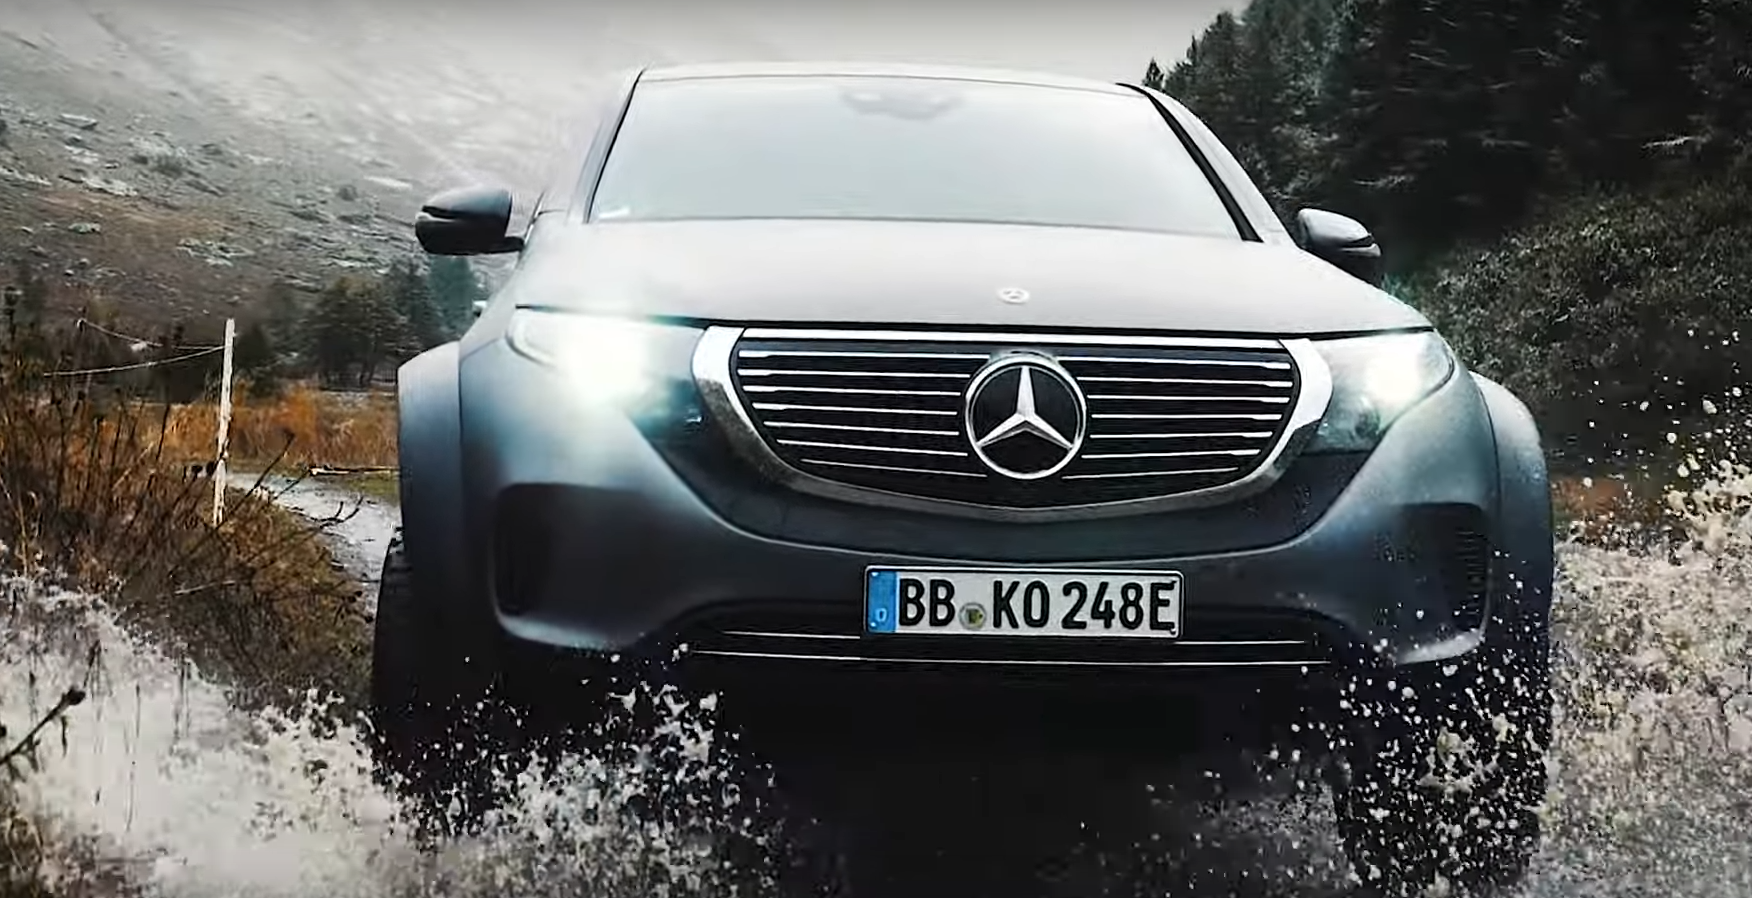 Mercedes has shared the latest video from the driving tests of its conceptual EQC 4x4² SUV on a picturesque serpentine mountain road in Italy.